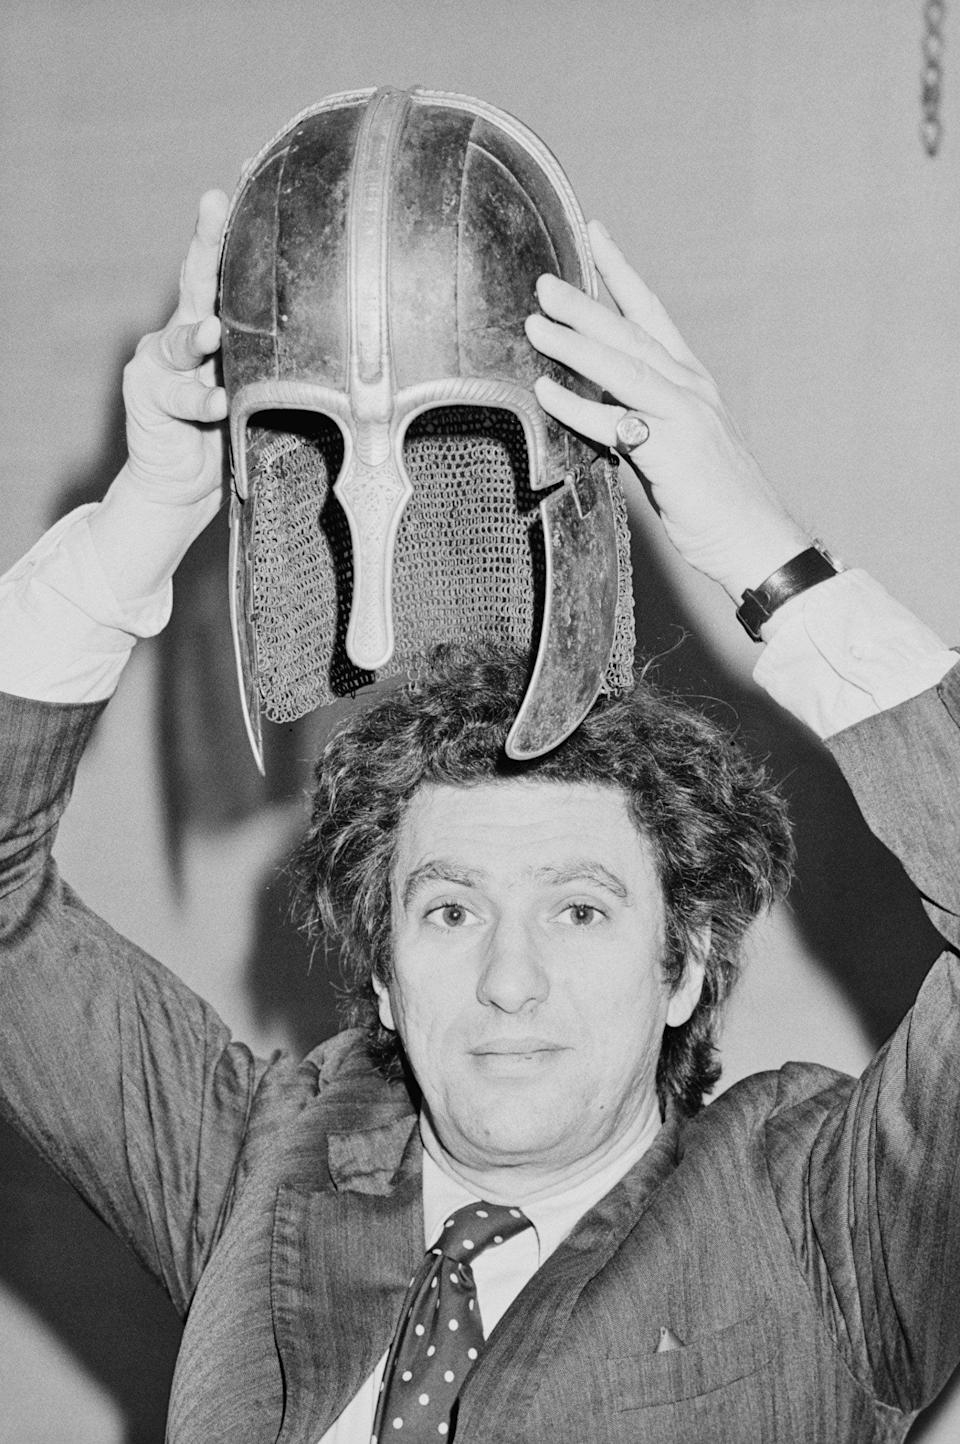 In 1984 with the Coppergate Helmet, an eighth-century Anglo-Saxon artefact that had been discovered in York - United News/Popperfoto via Getty Images/Getty Images